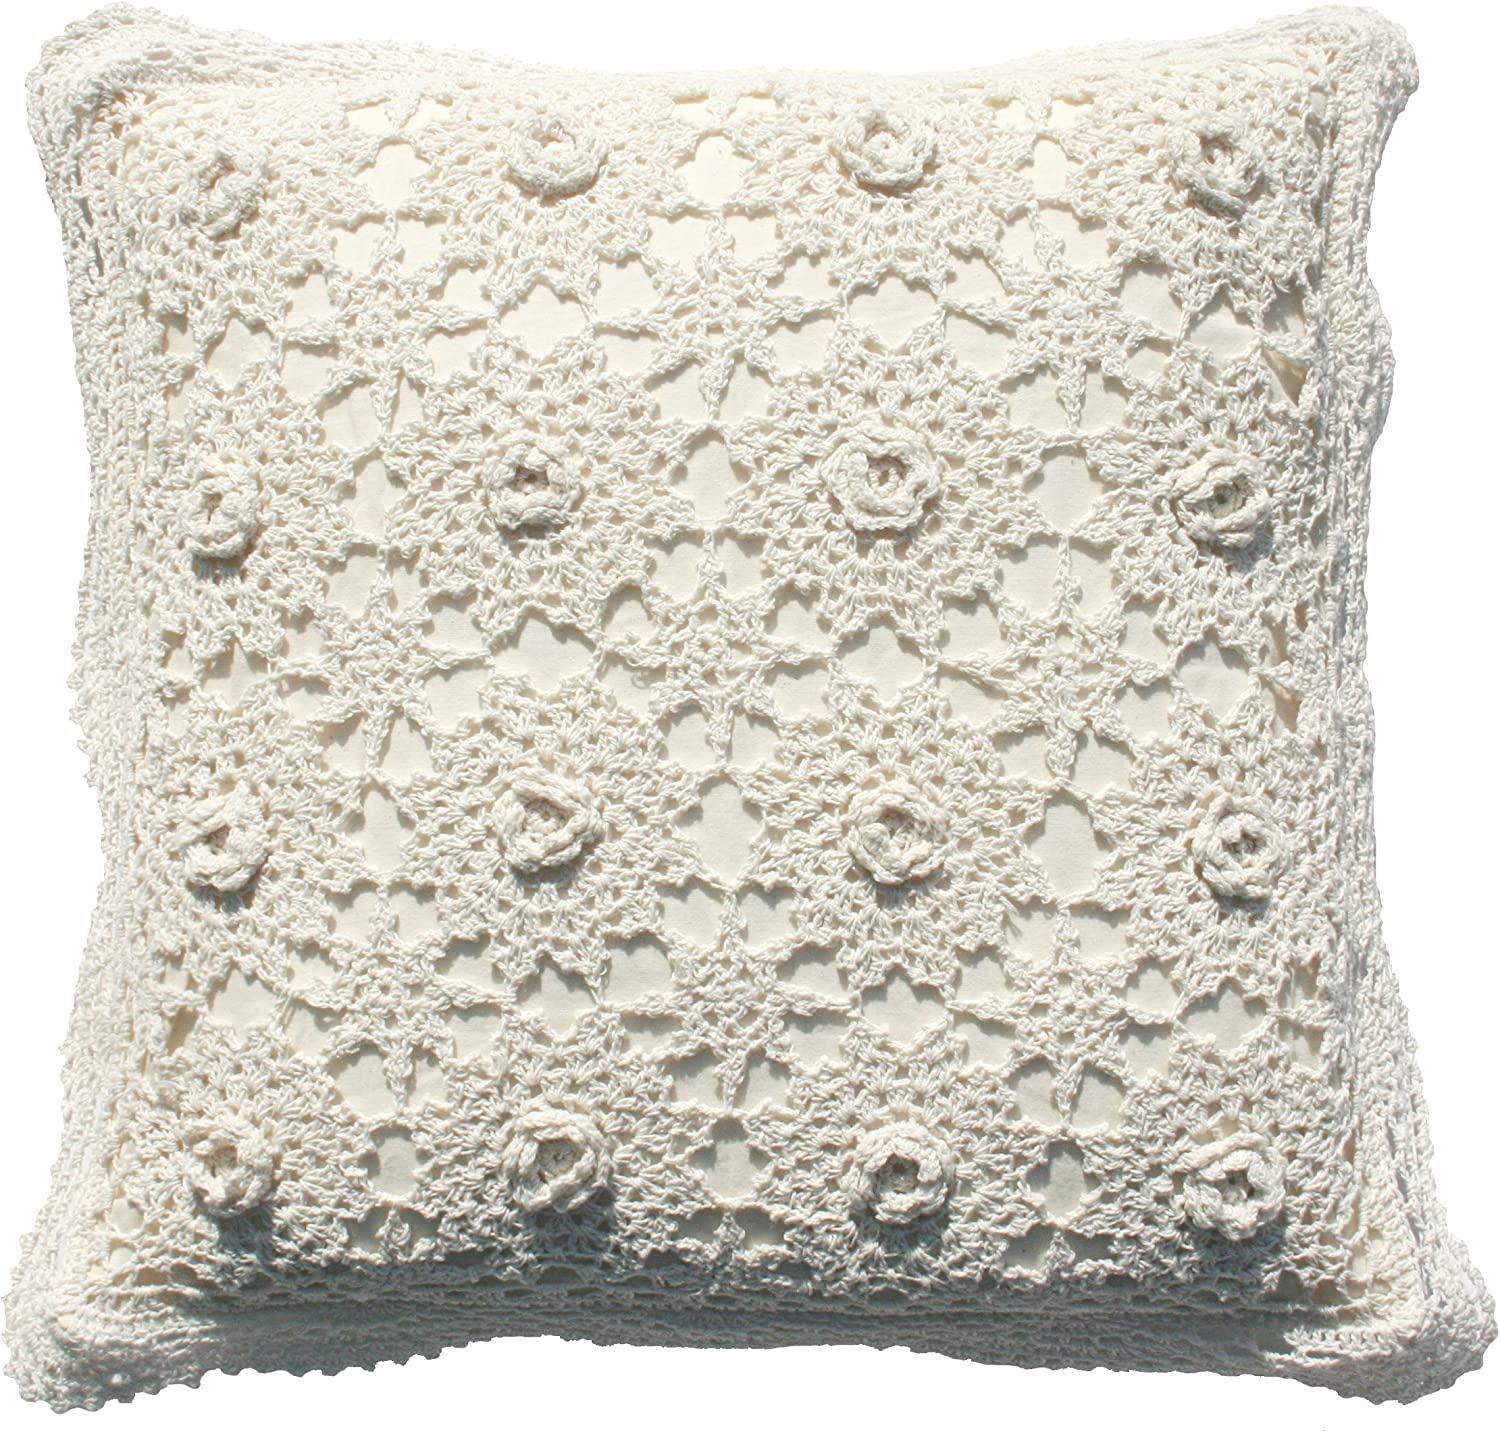 Crochet lace pillowcase 16 inches